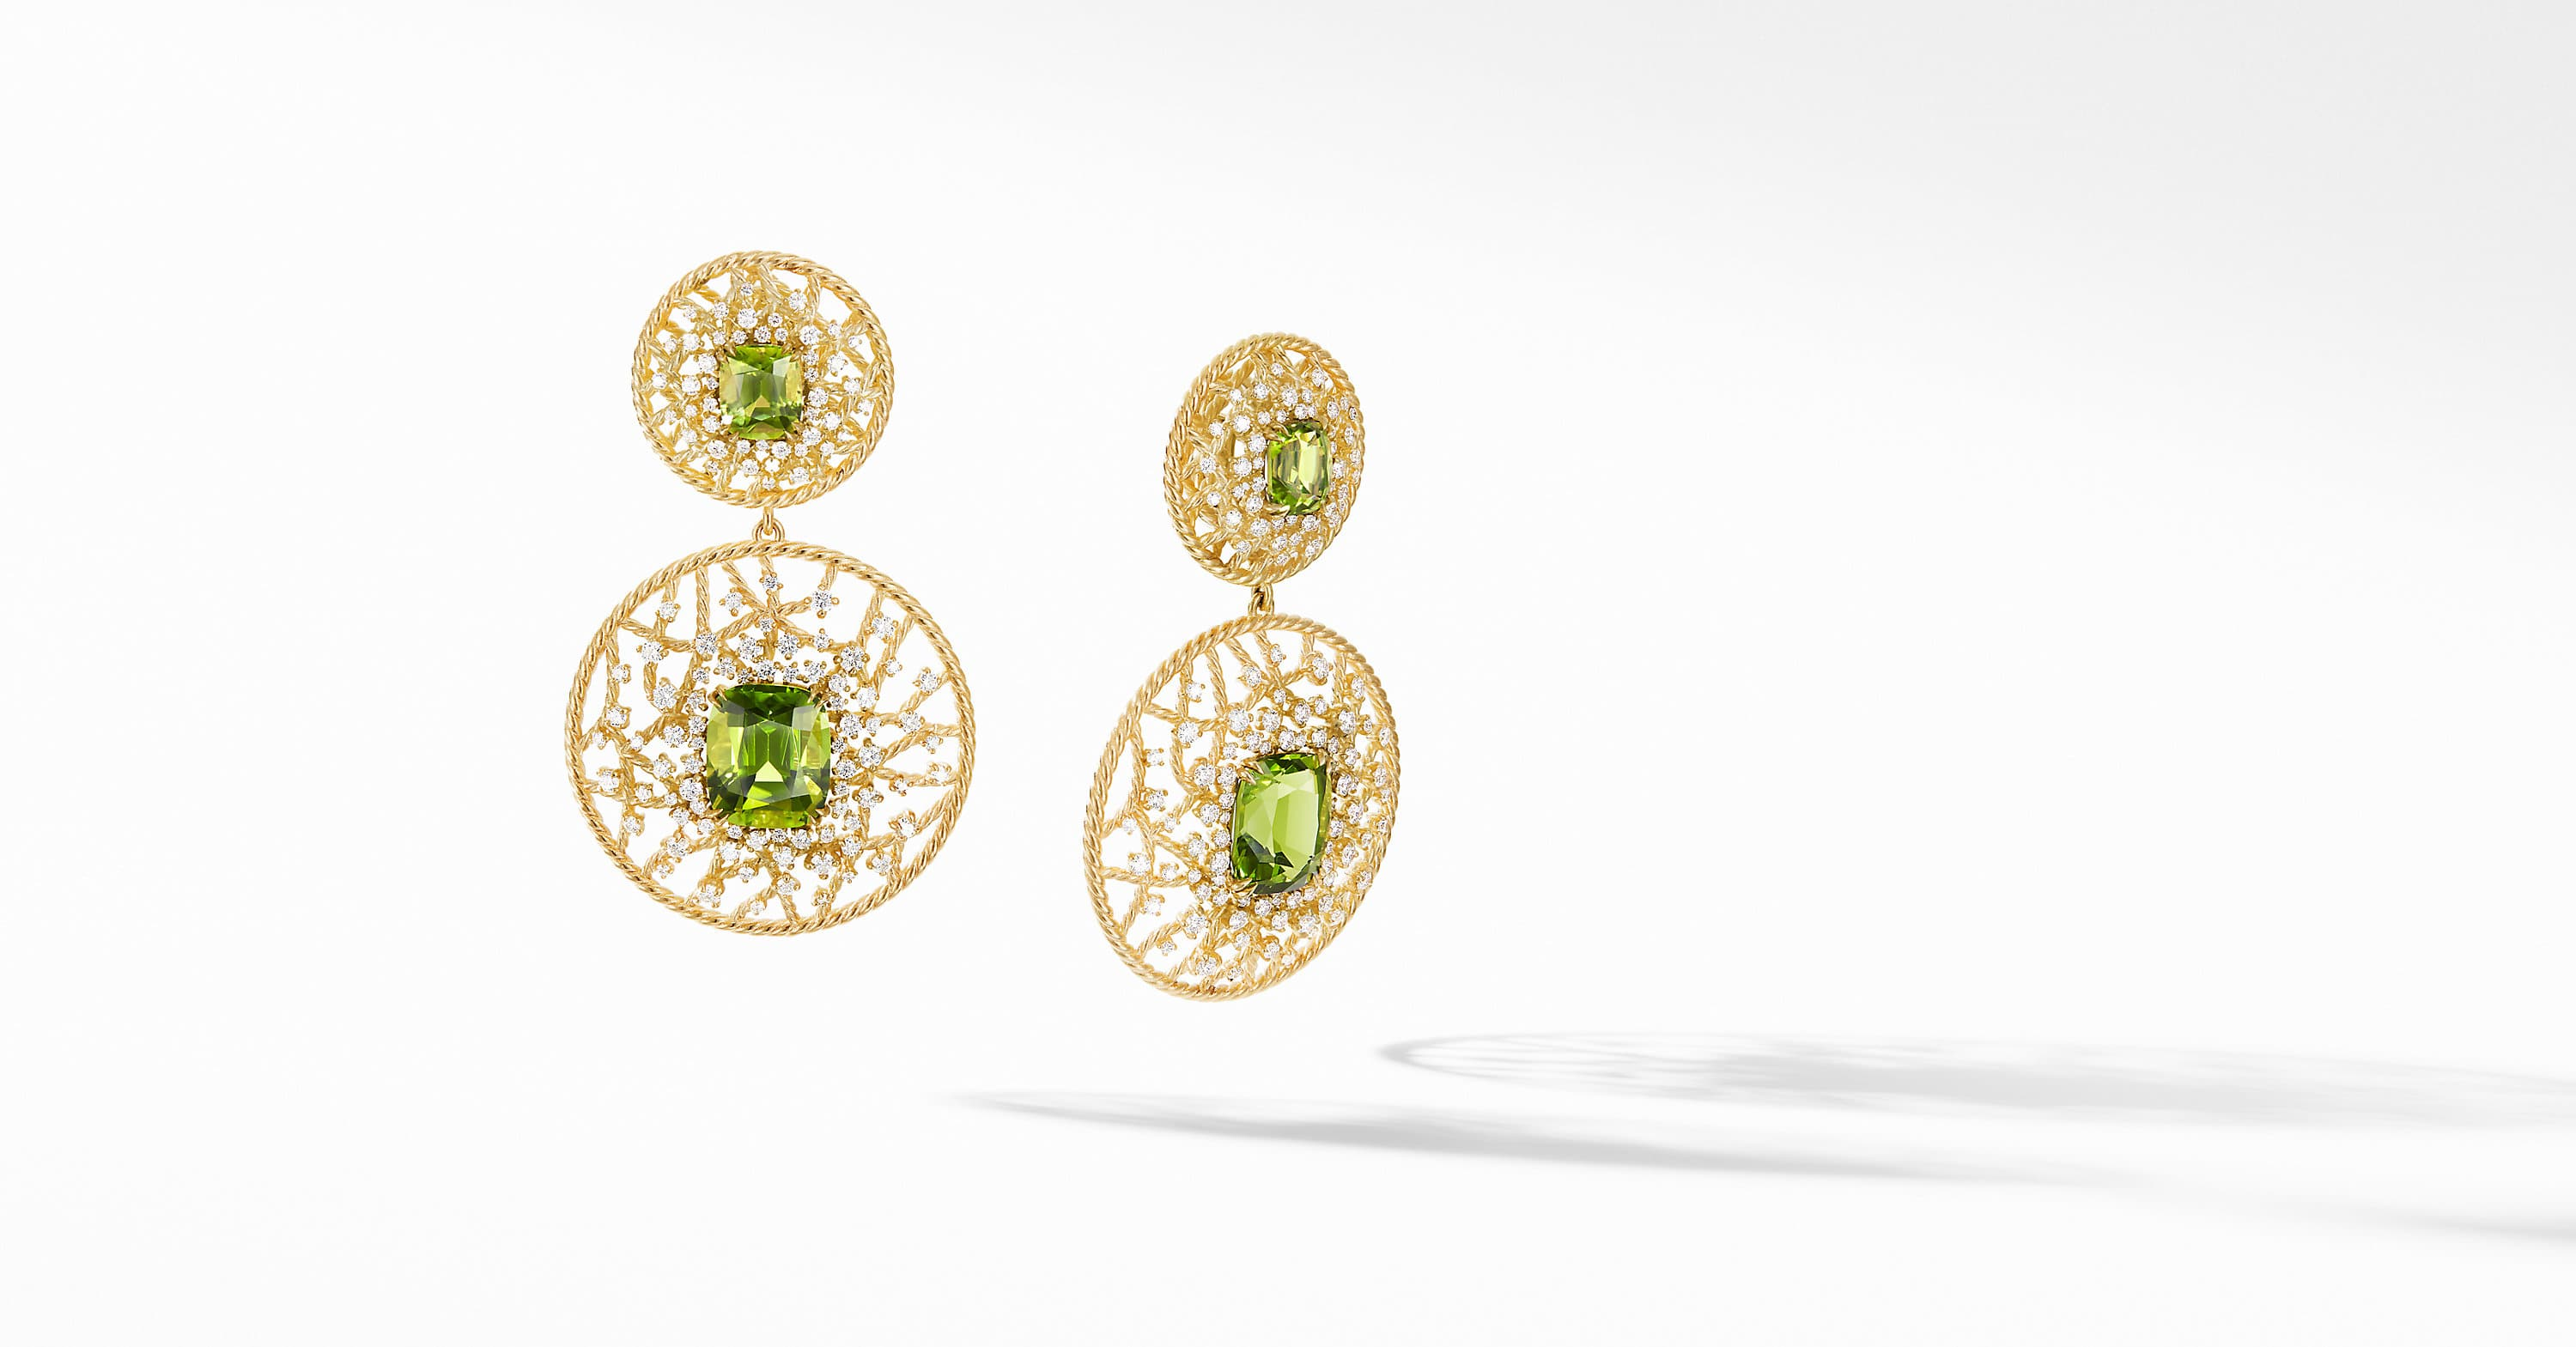 Fine Cable Round Drop Earrings in 18K Yellow Gold with Diamonds